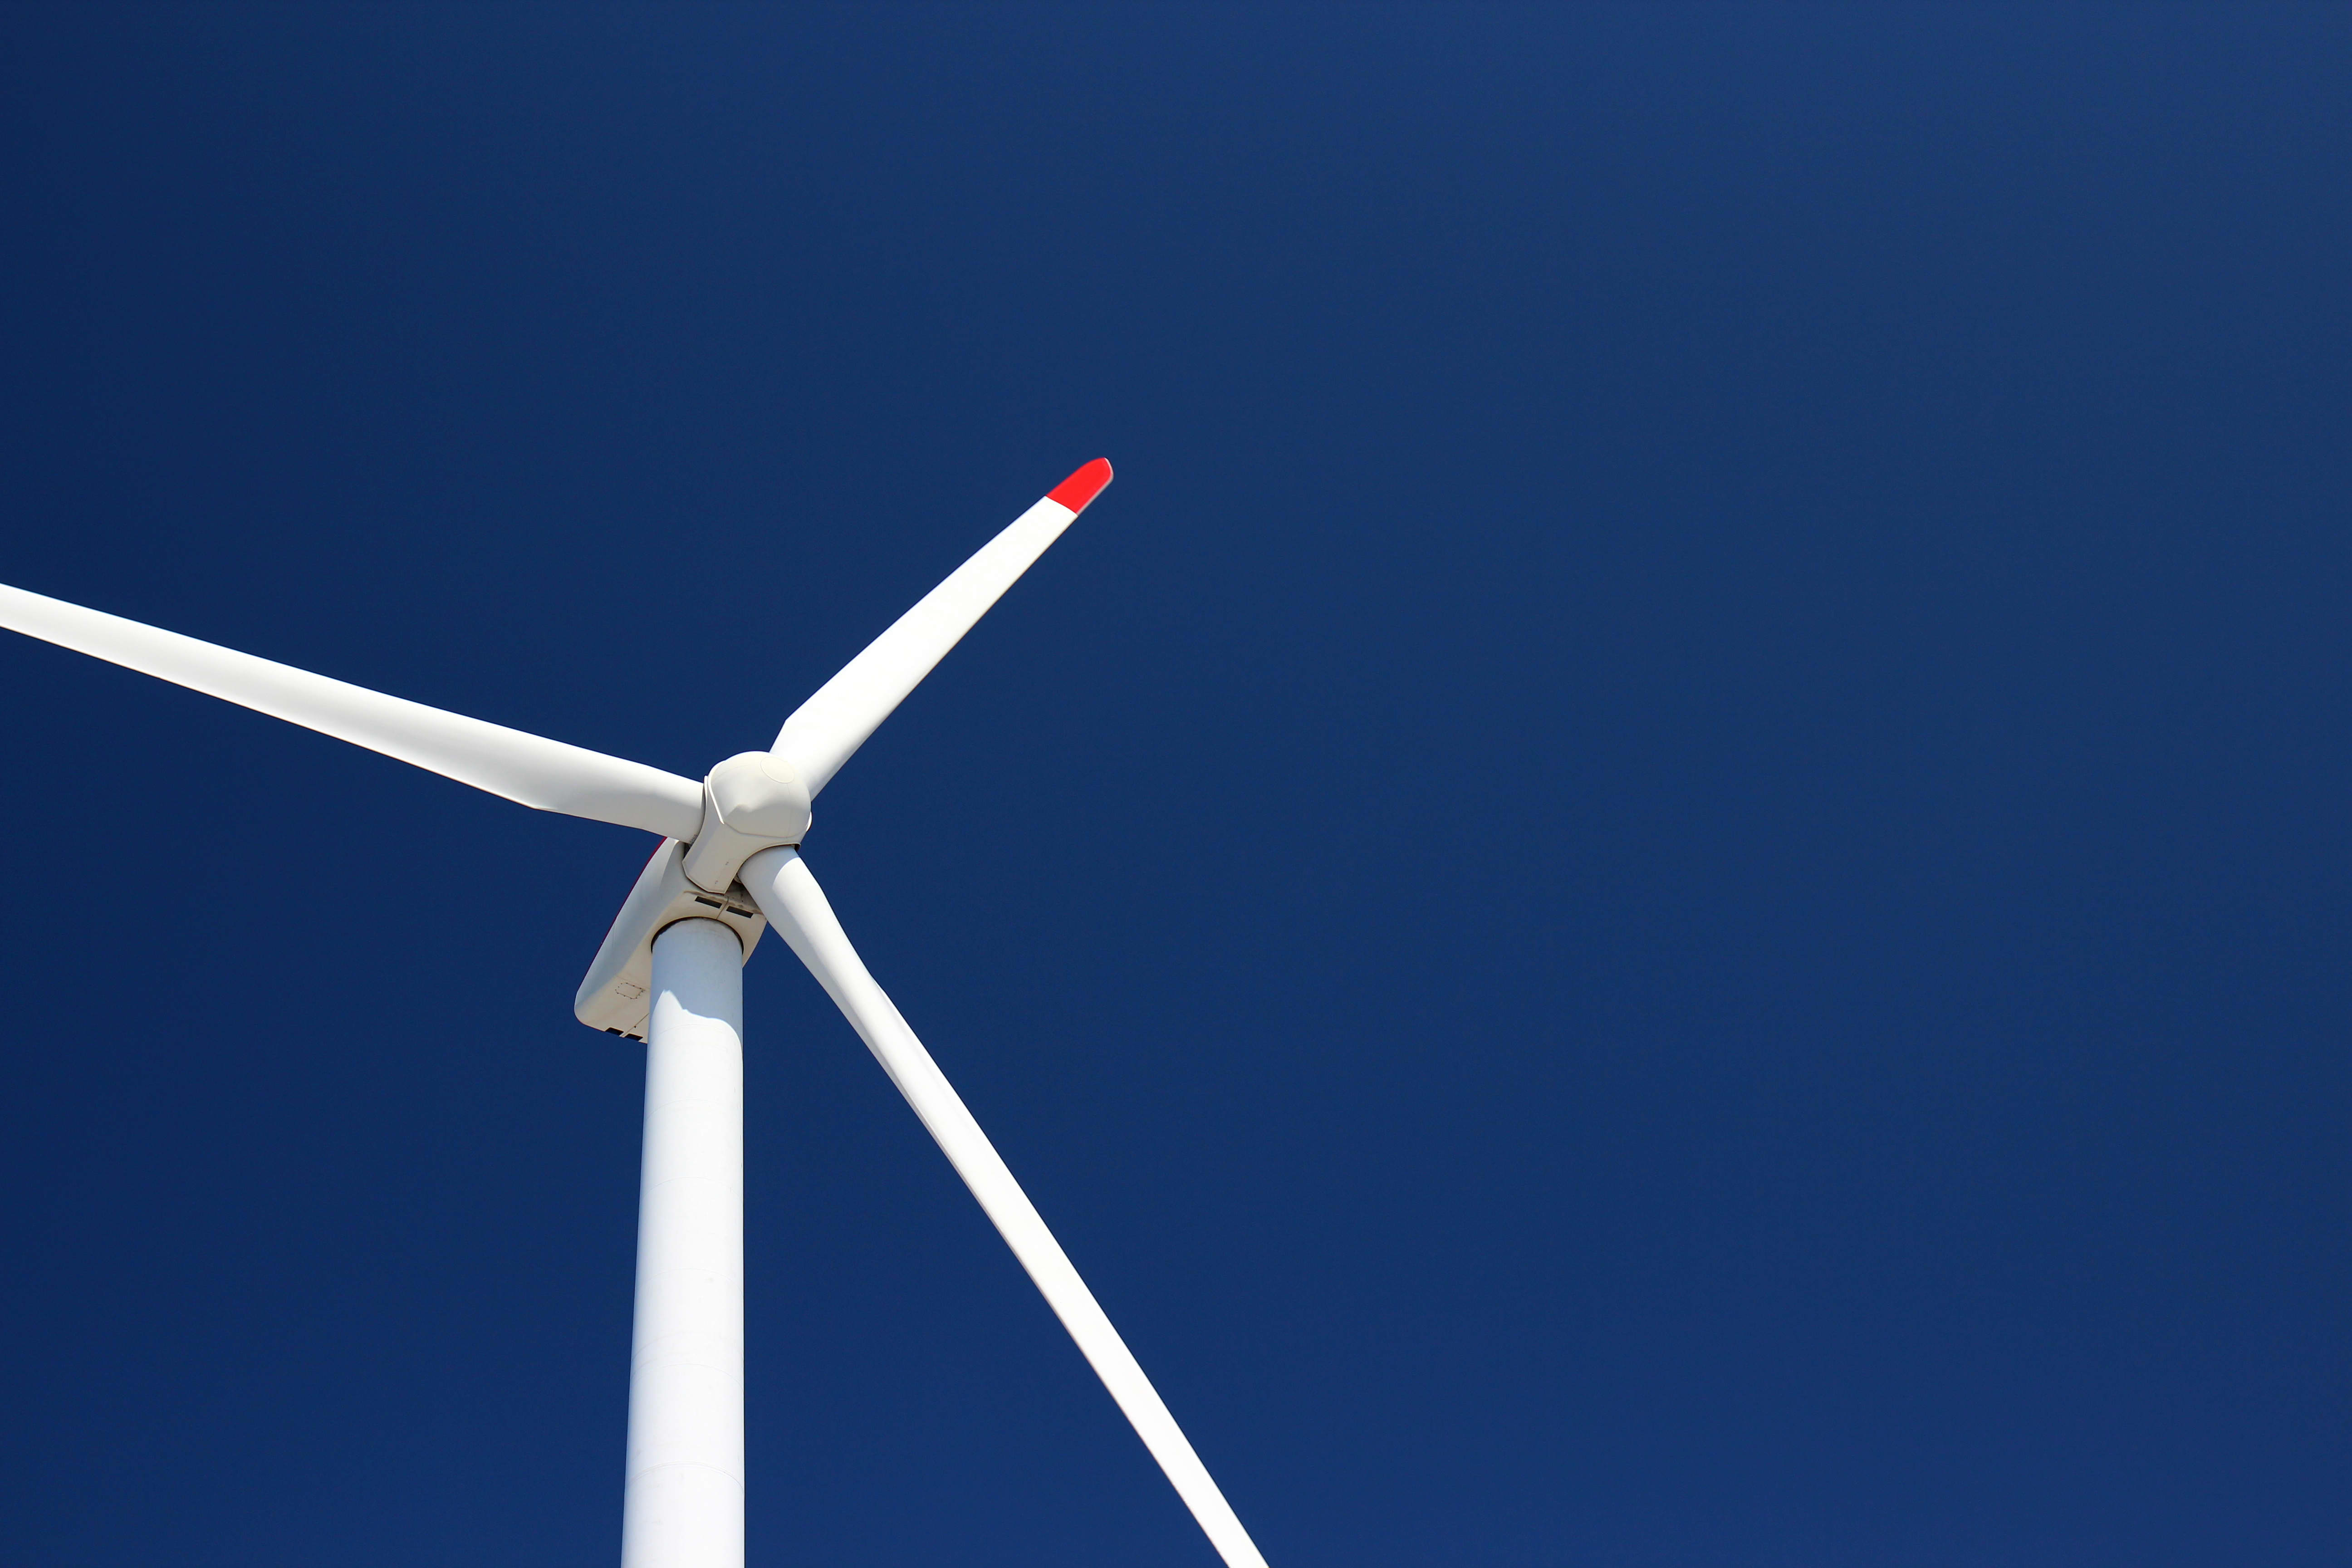 Siemens Gamesa to supply 'typhoon-proof turbines' for major Japanese wind project